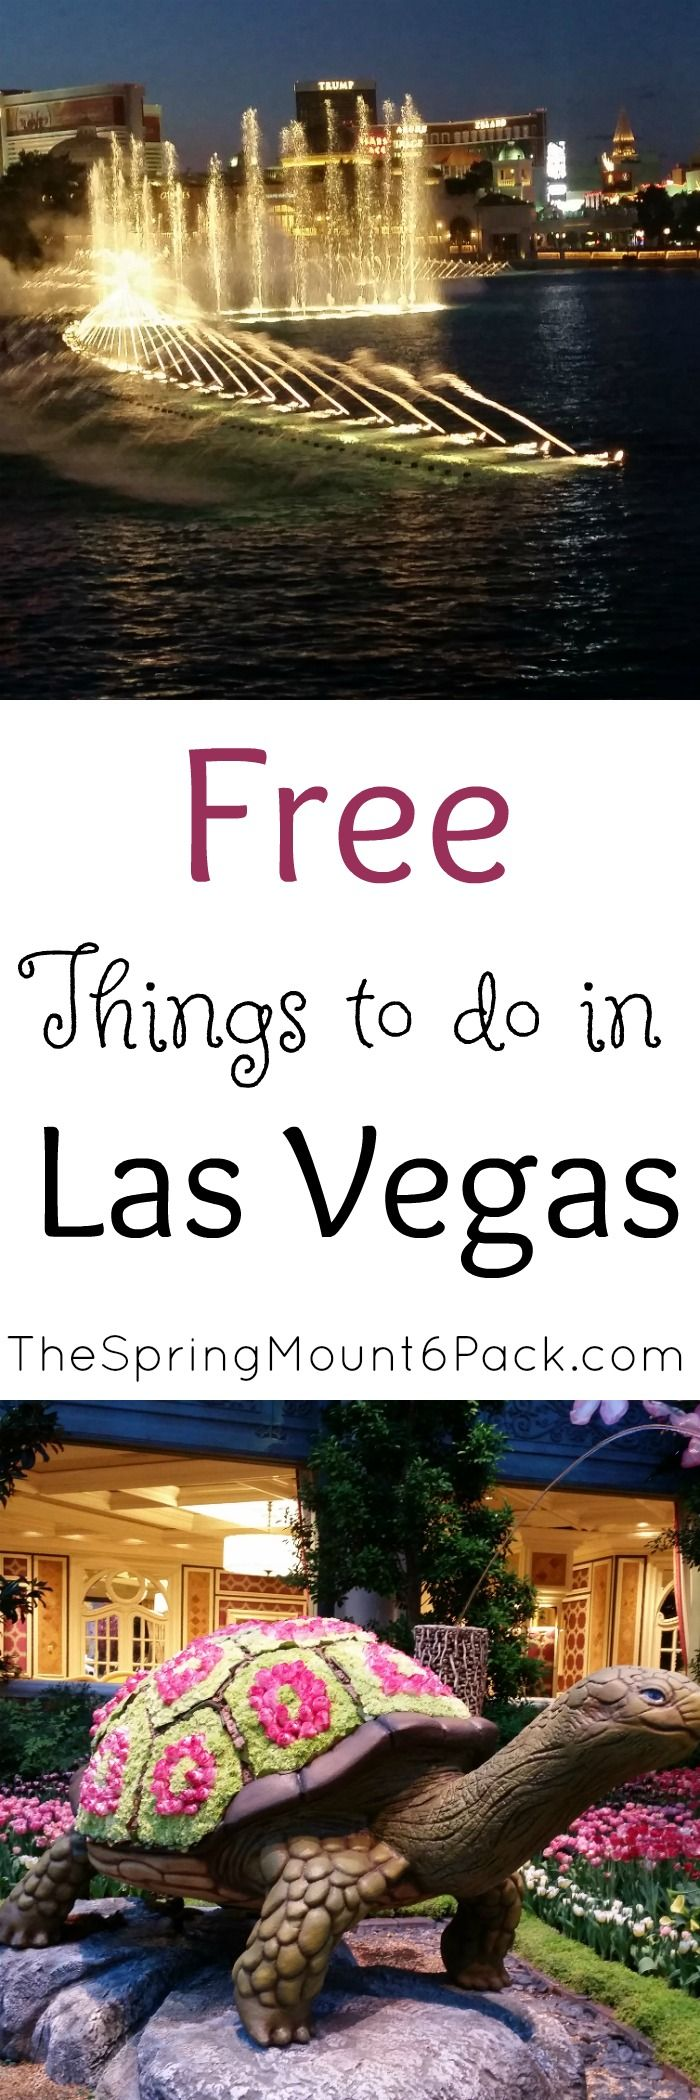 Heading to Las Vegas? Wondering what else there is to do besides gamble? Here are some free things to do in Las Vegas that you will love.